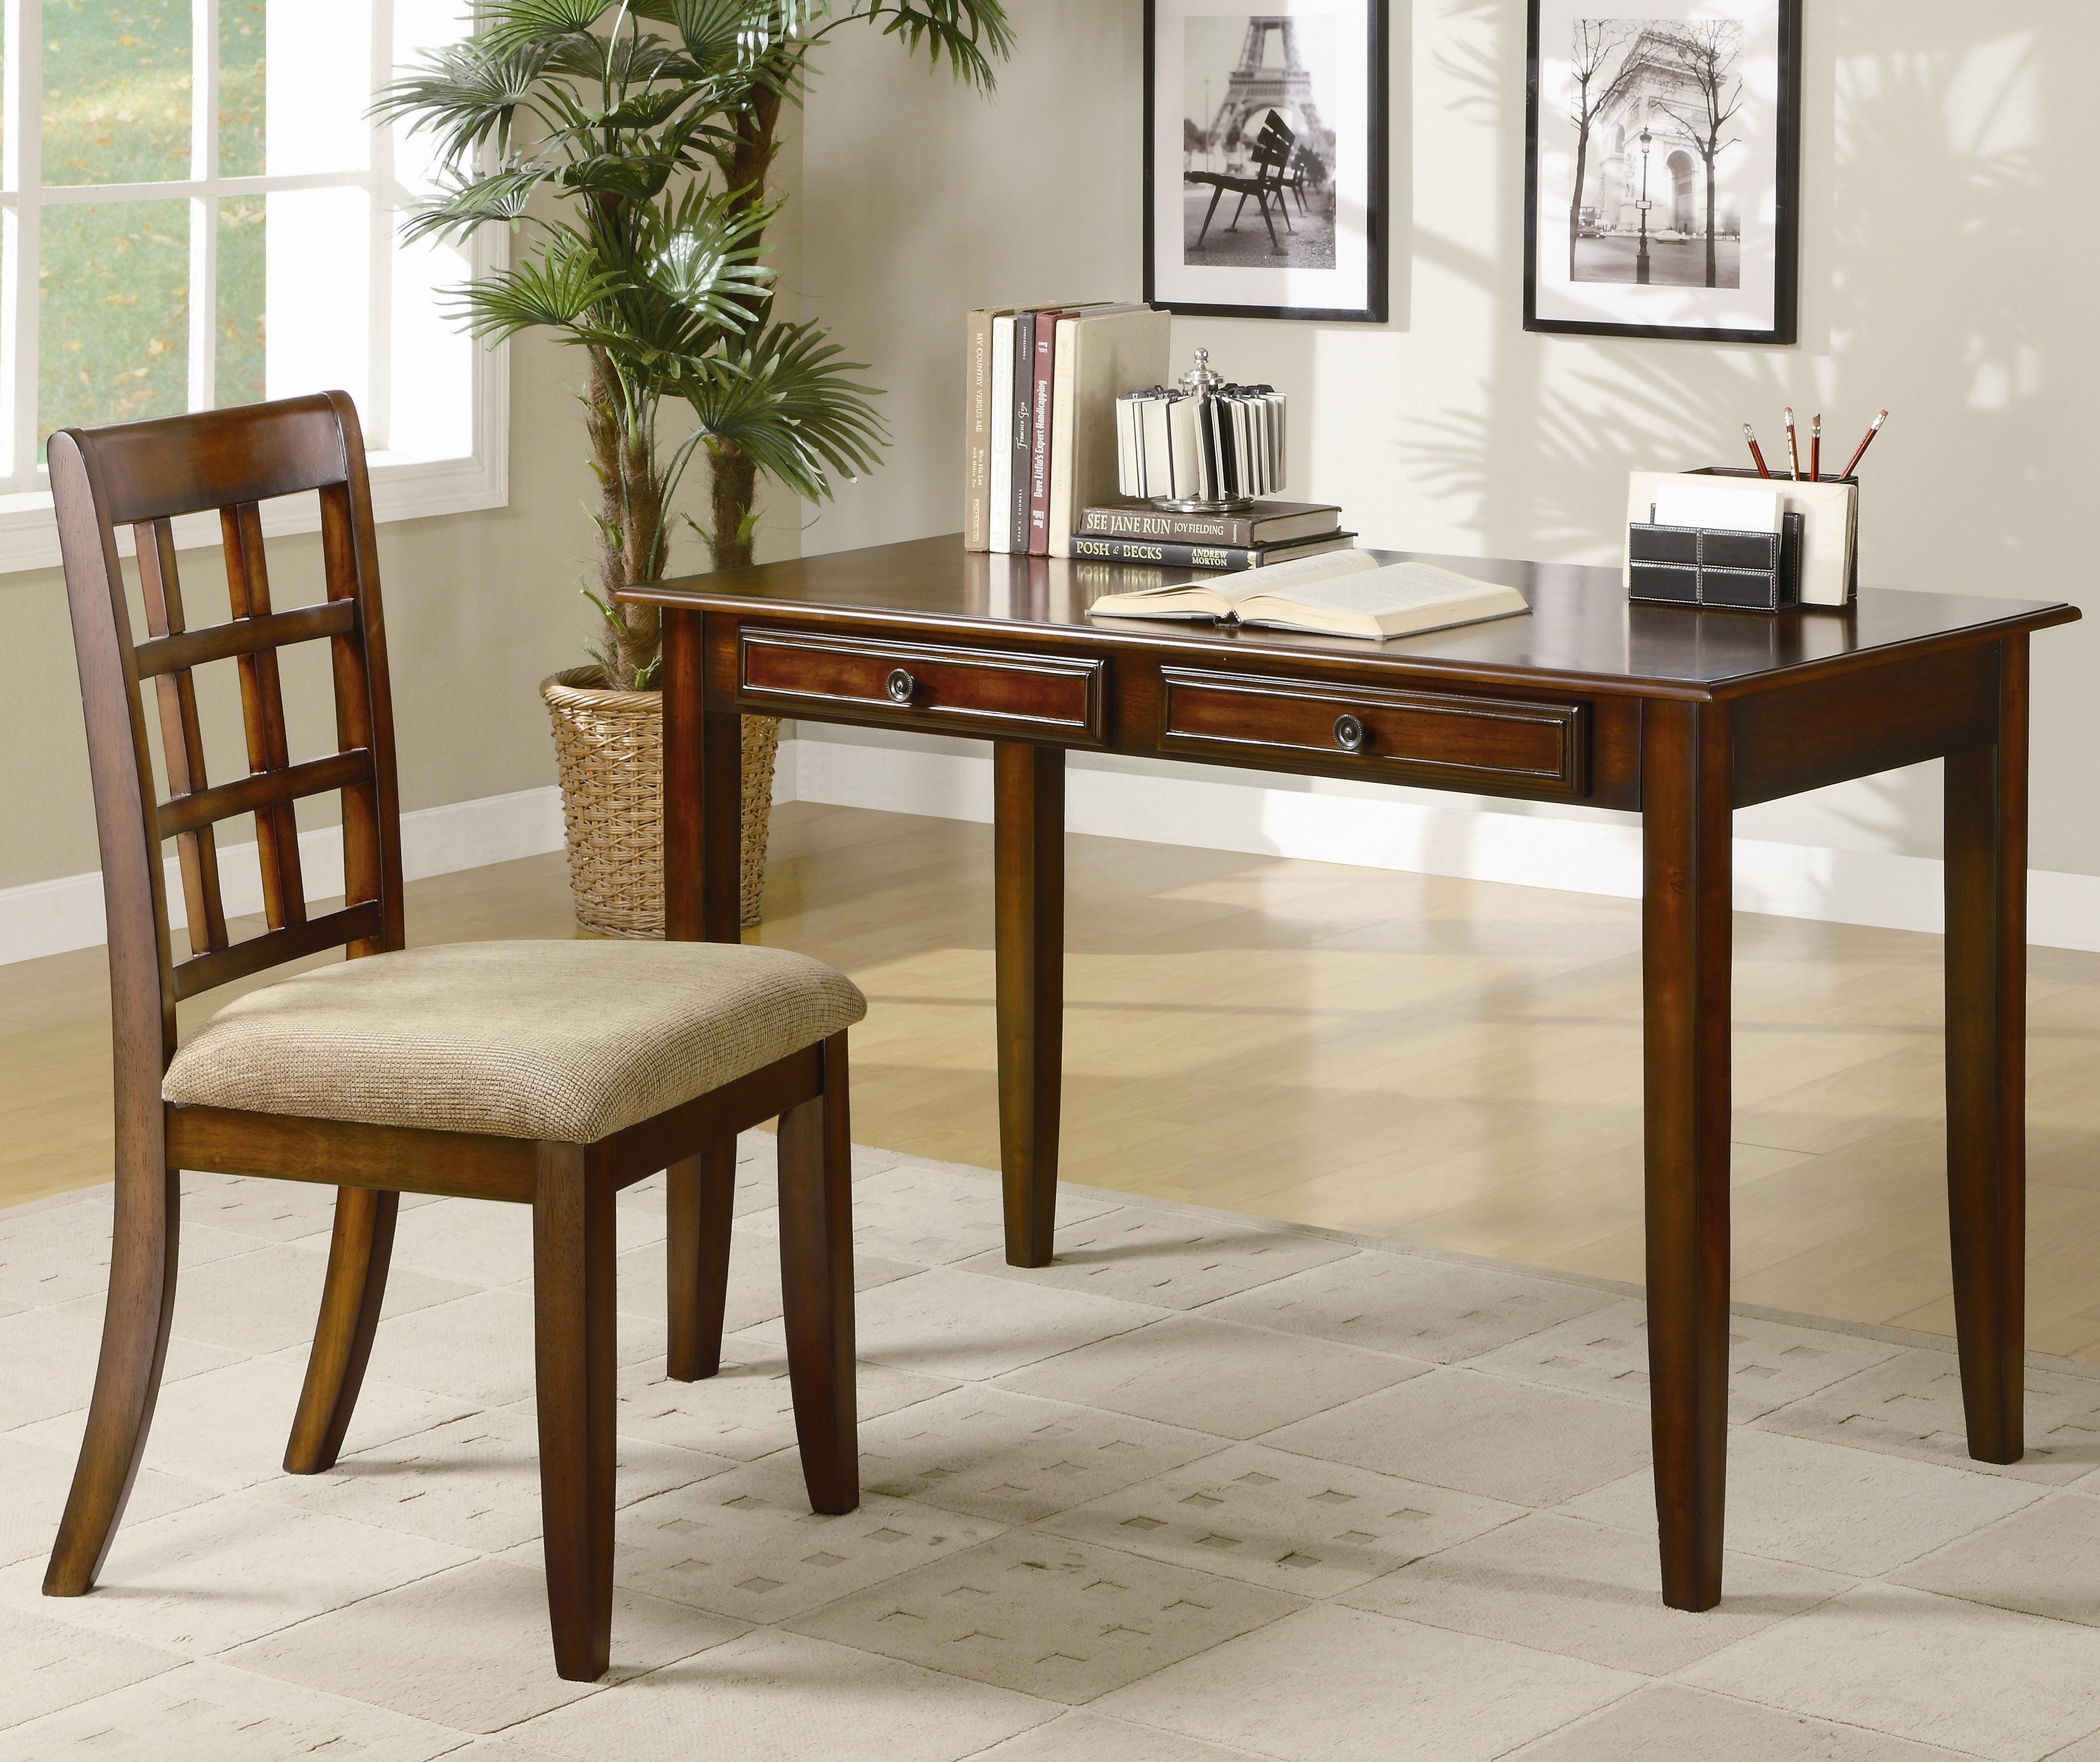 Coaster Desks 2 Piece Desk Set - Item Number: 800778